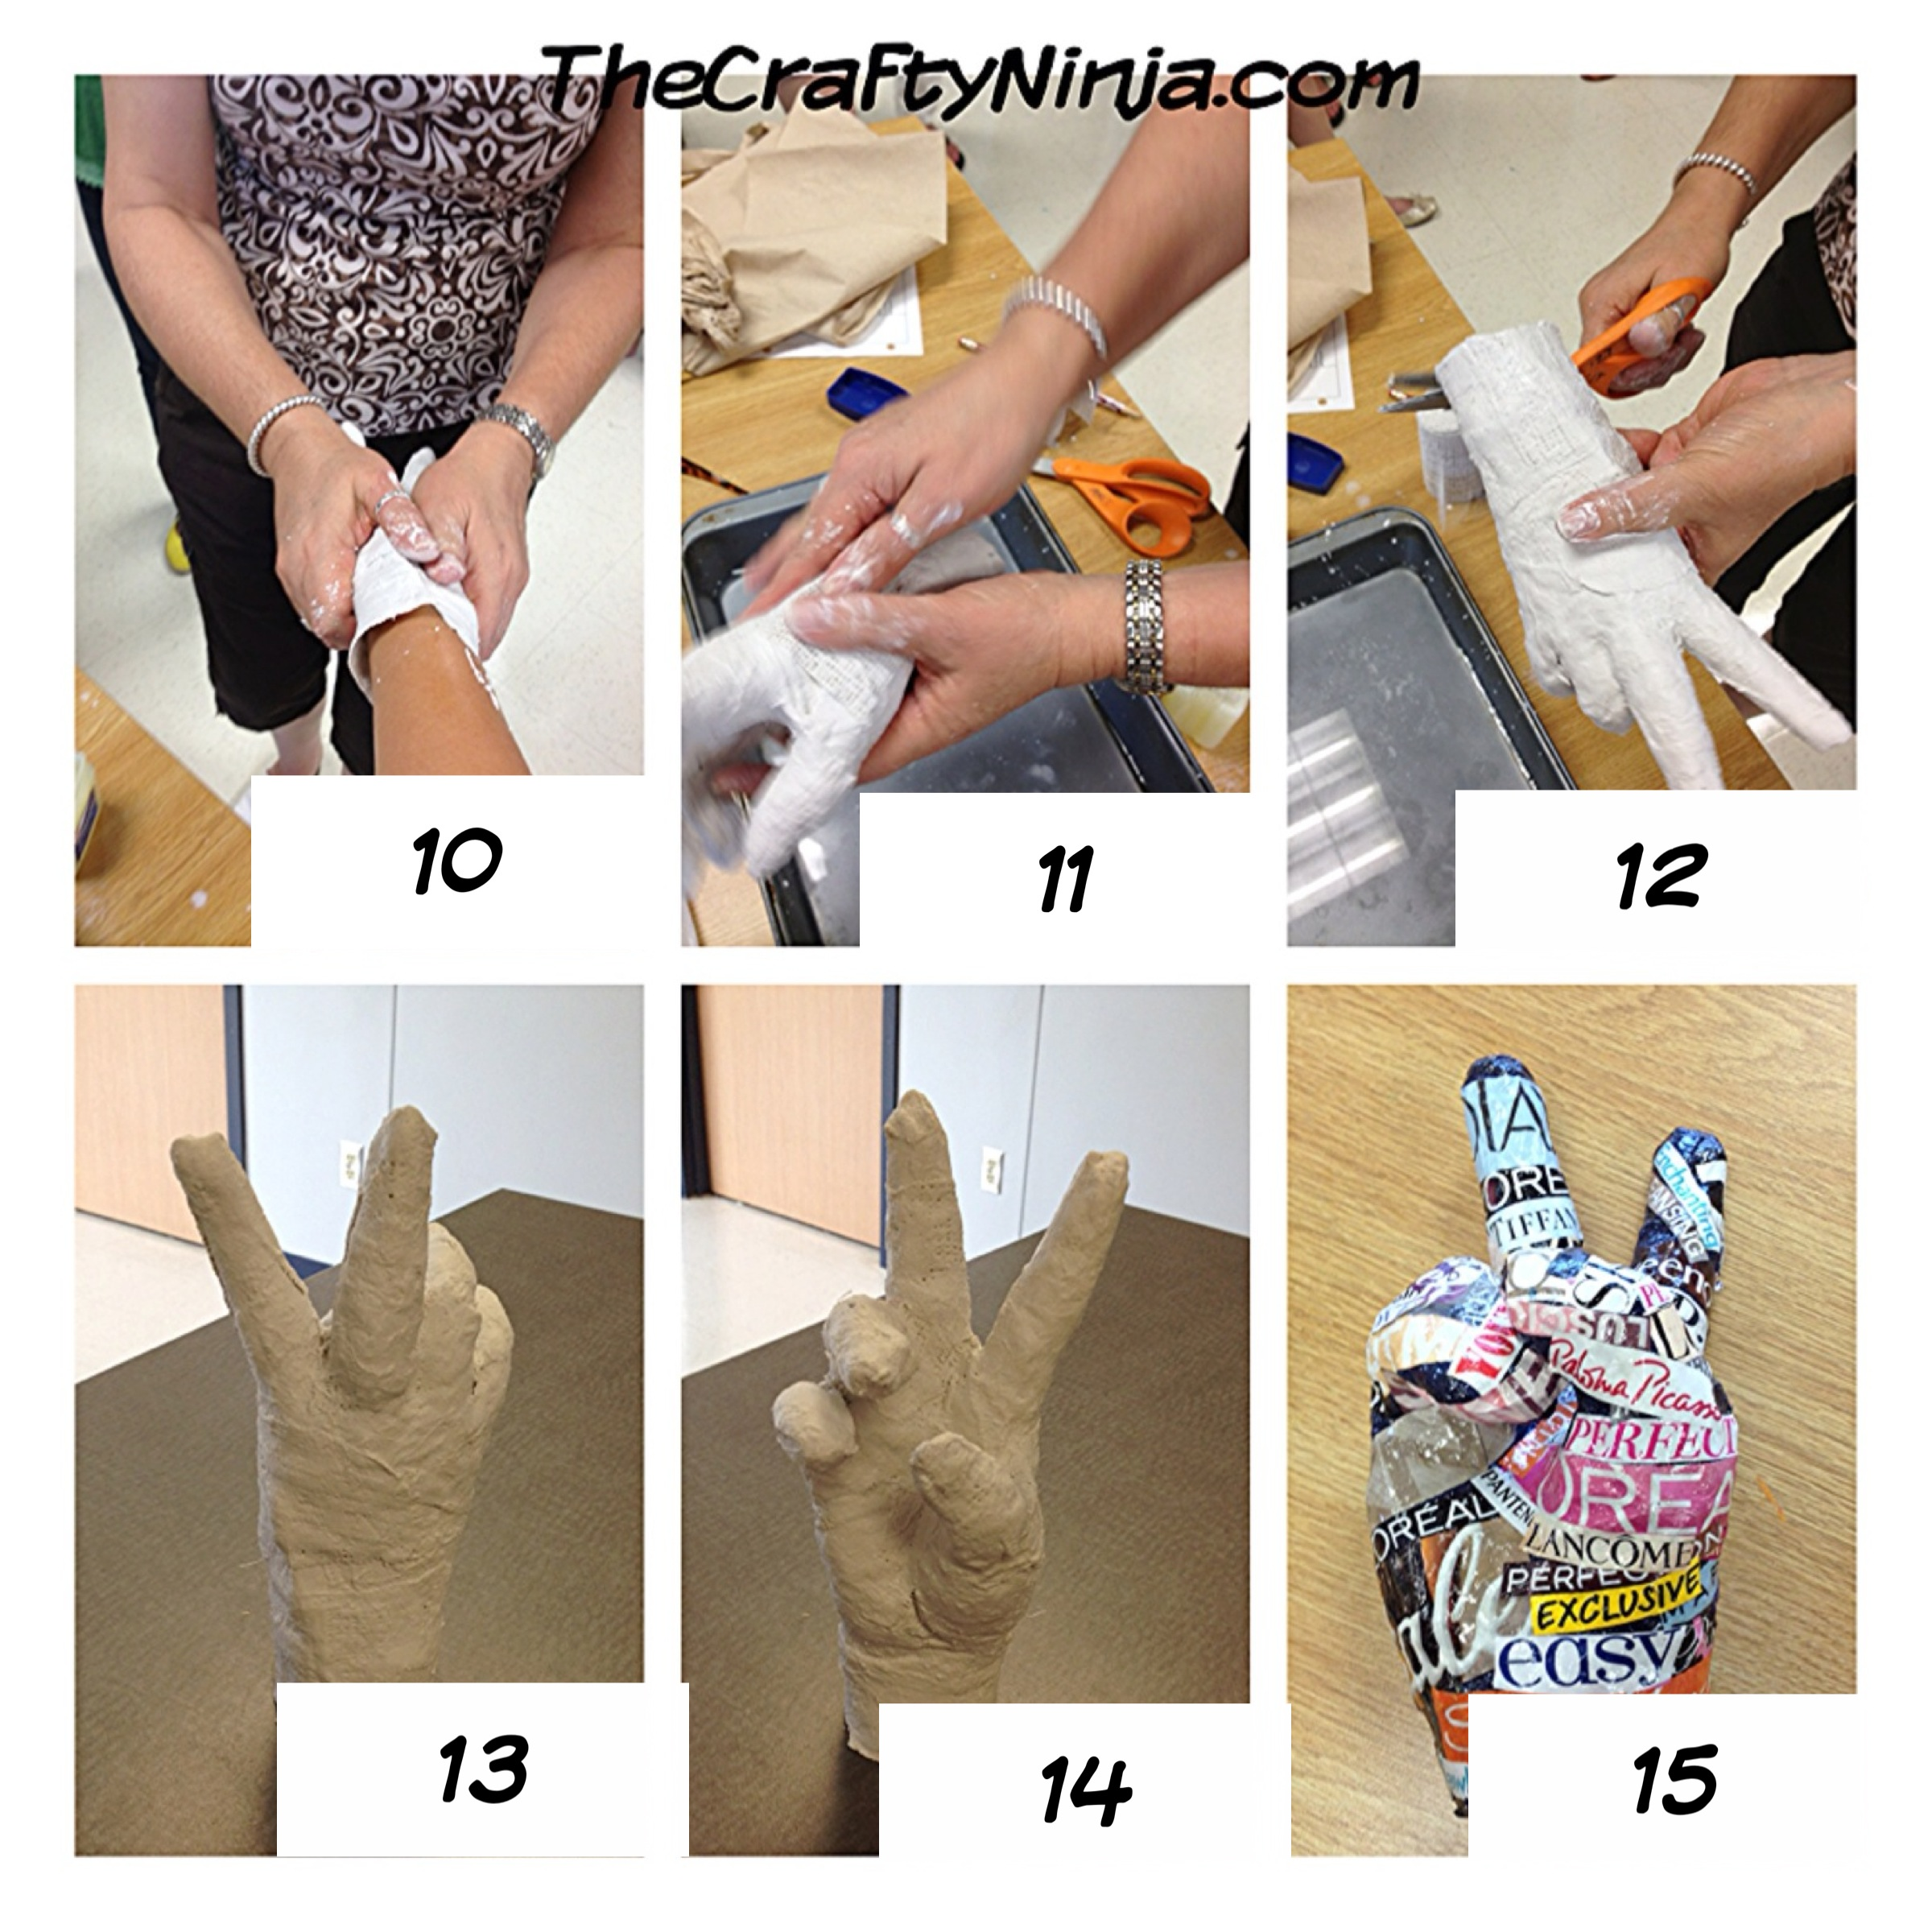 Plaster Hand Project | The Crafty Ninja